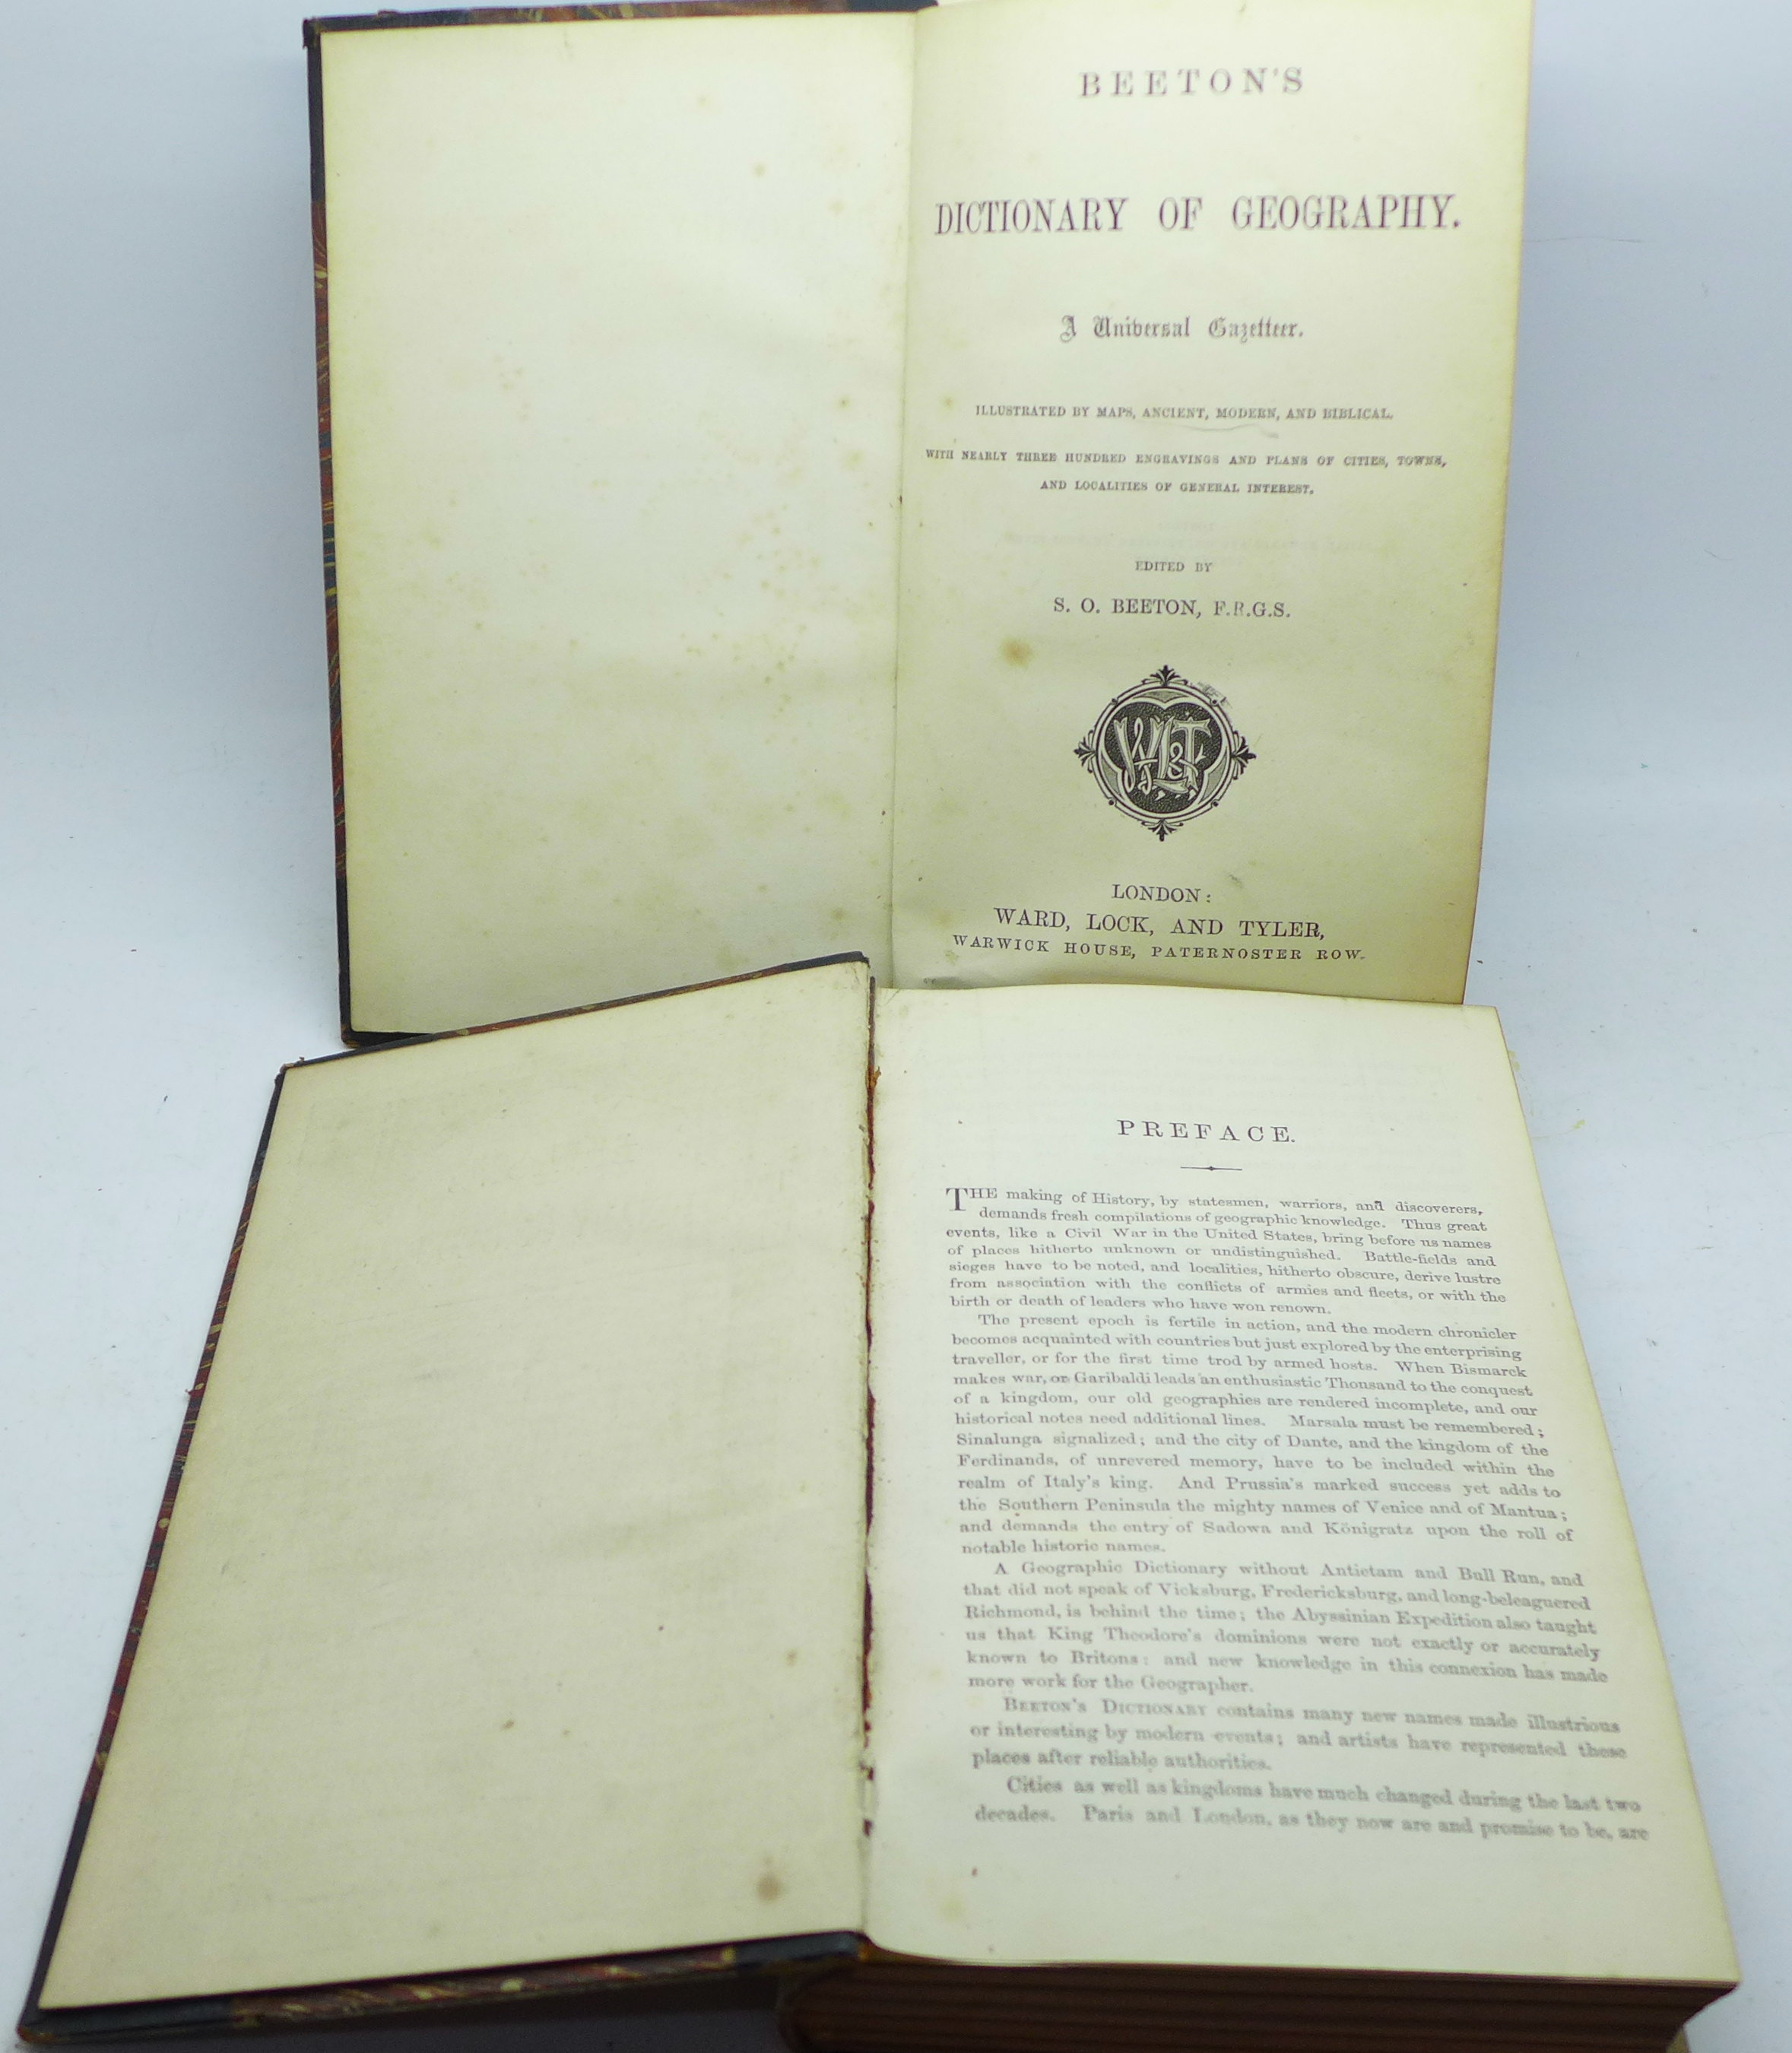 Two volumes, Beeton's Dictionary of Geography, printed by Savill, Edwards & Co., circa 1869, with